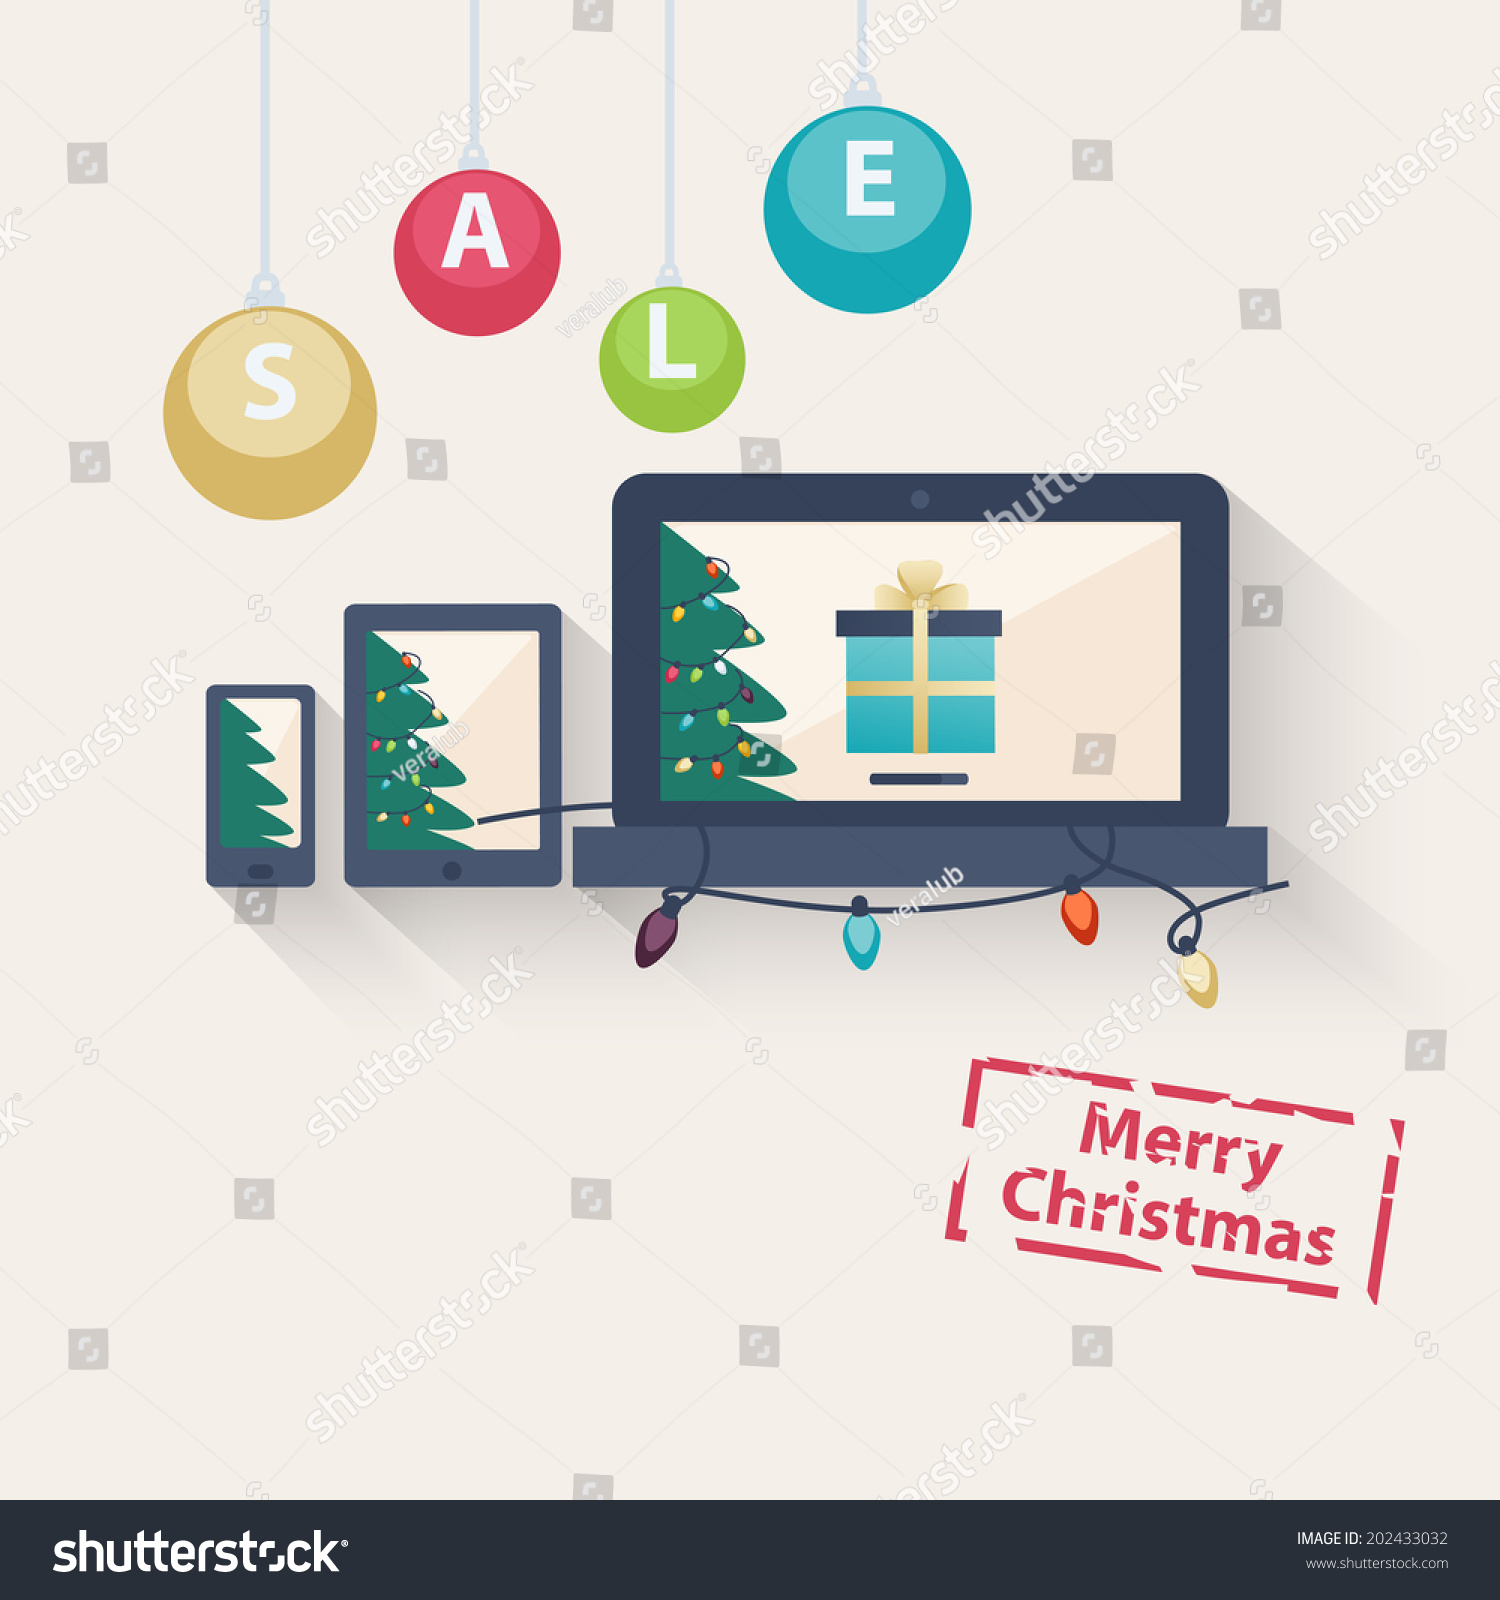 New Year Christmas Online Sale Concept Stock Vector (Royalty Free ...